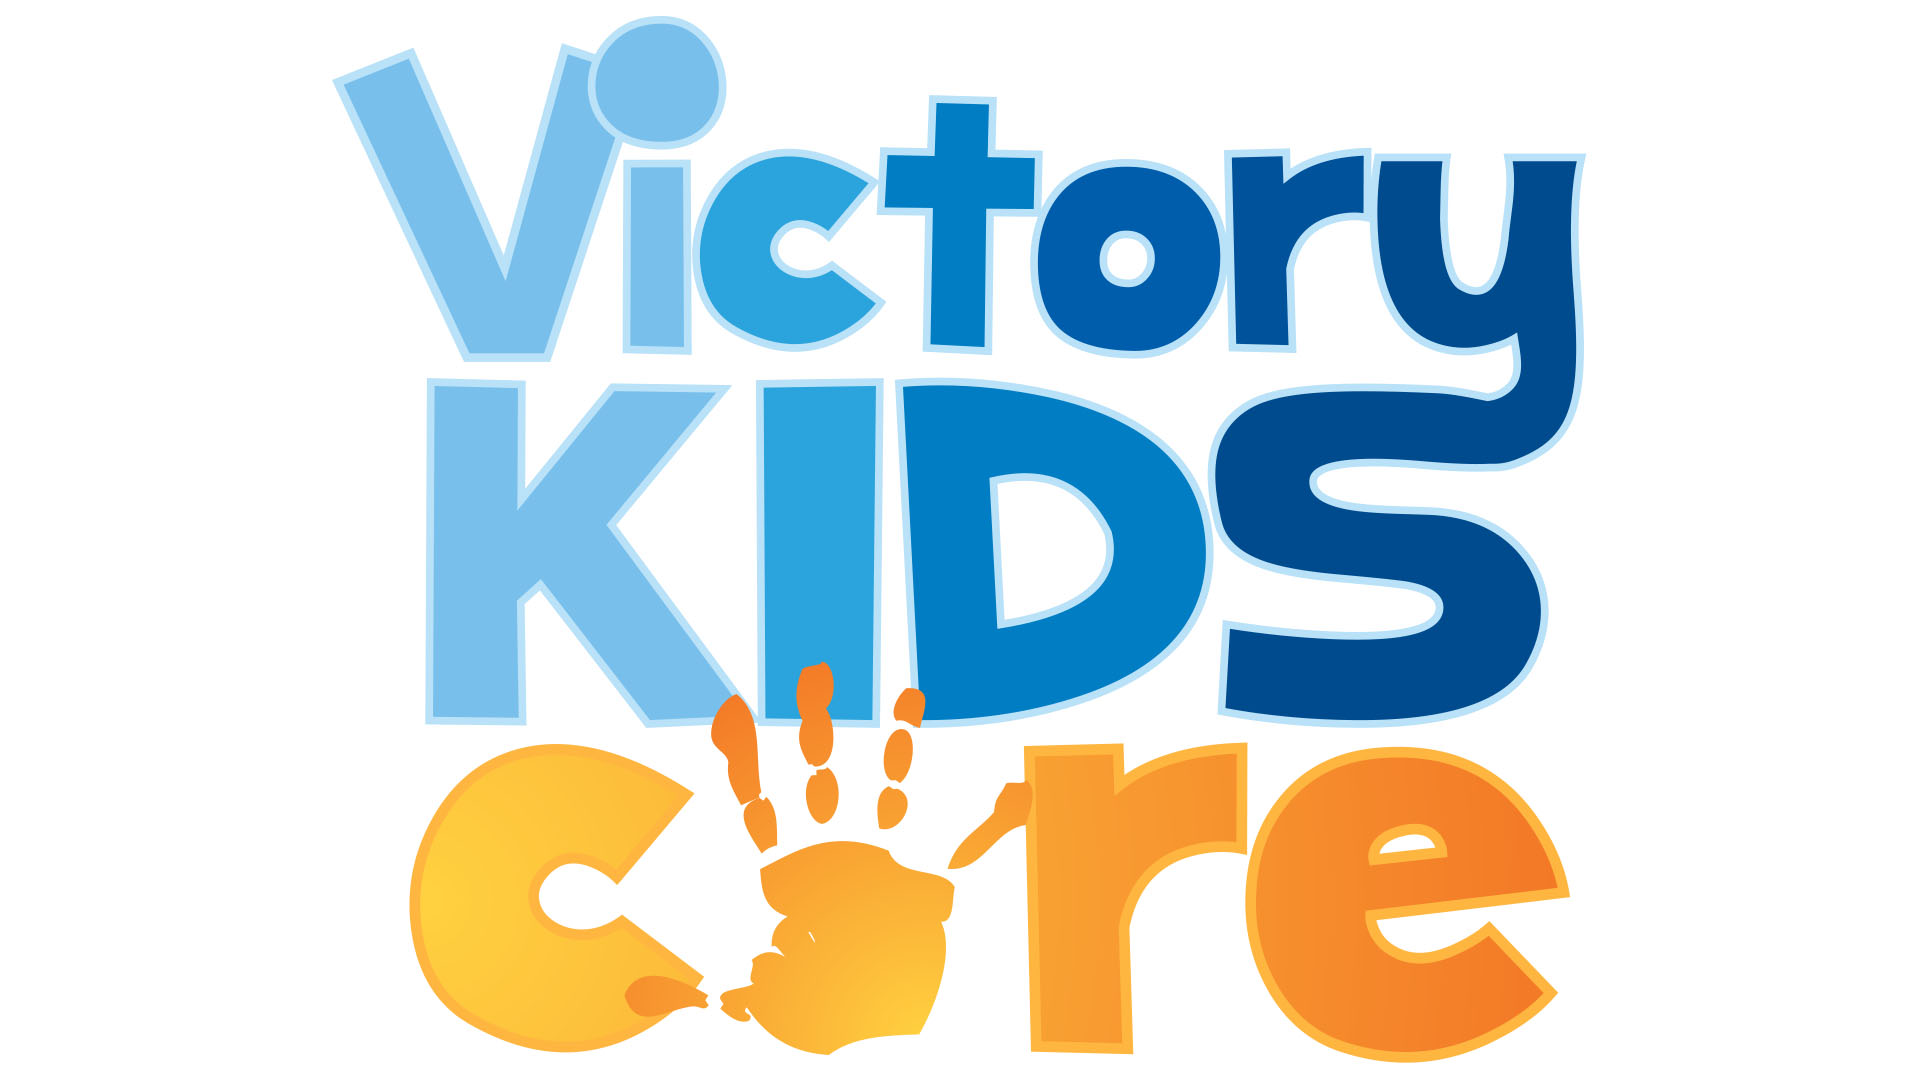 Victory kids care 1920x1080